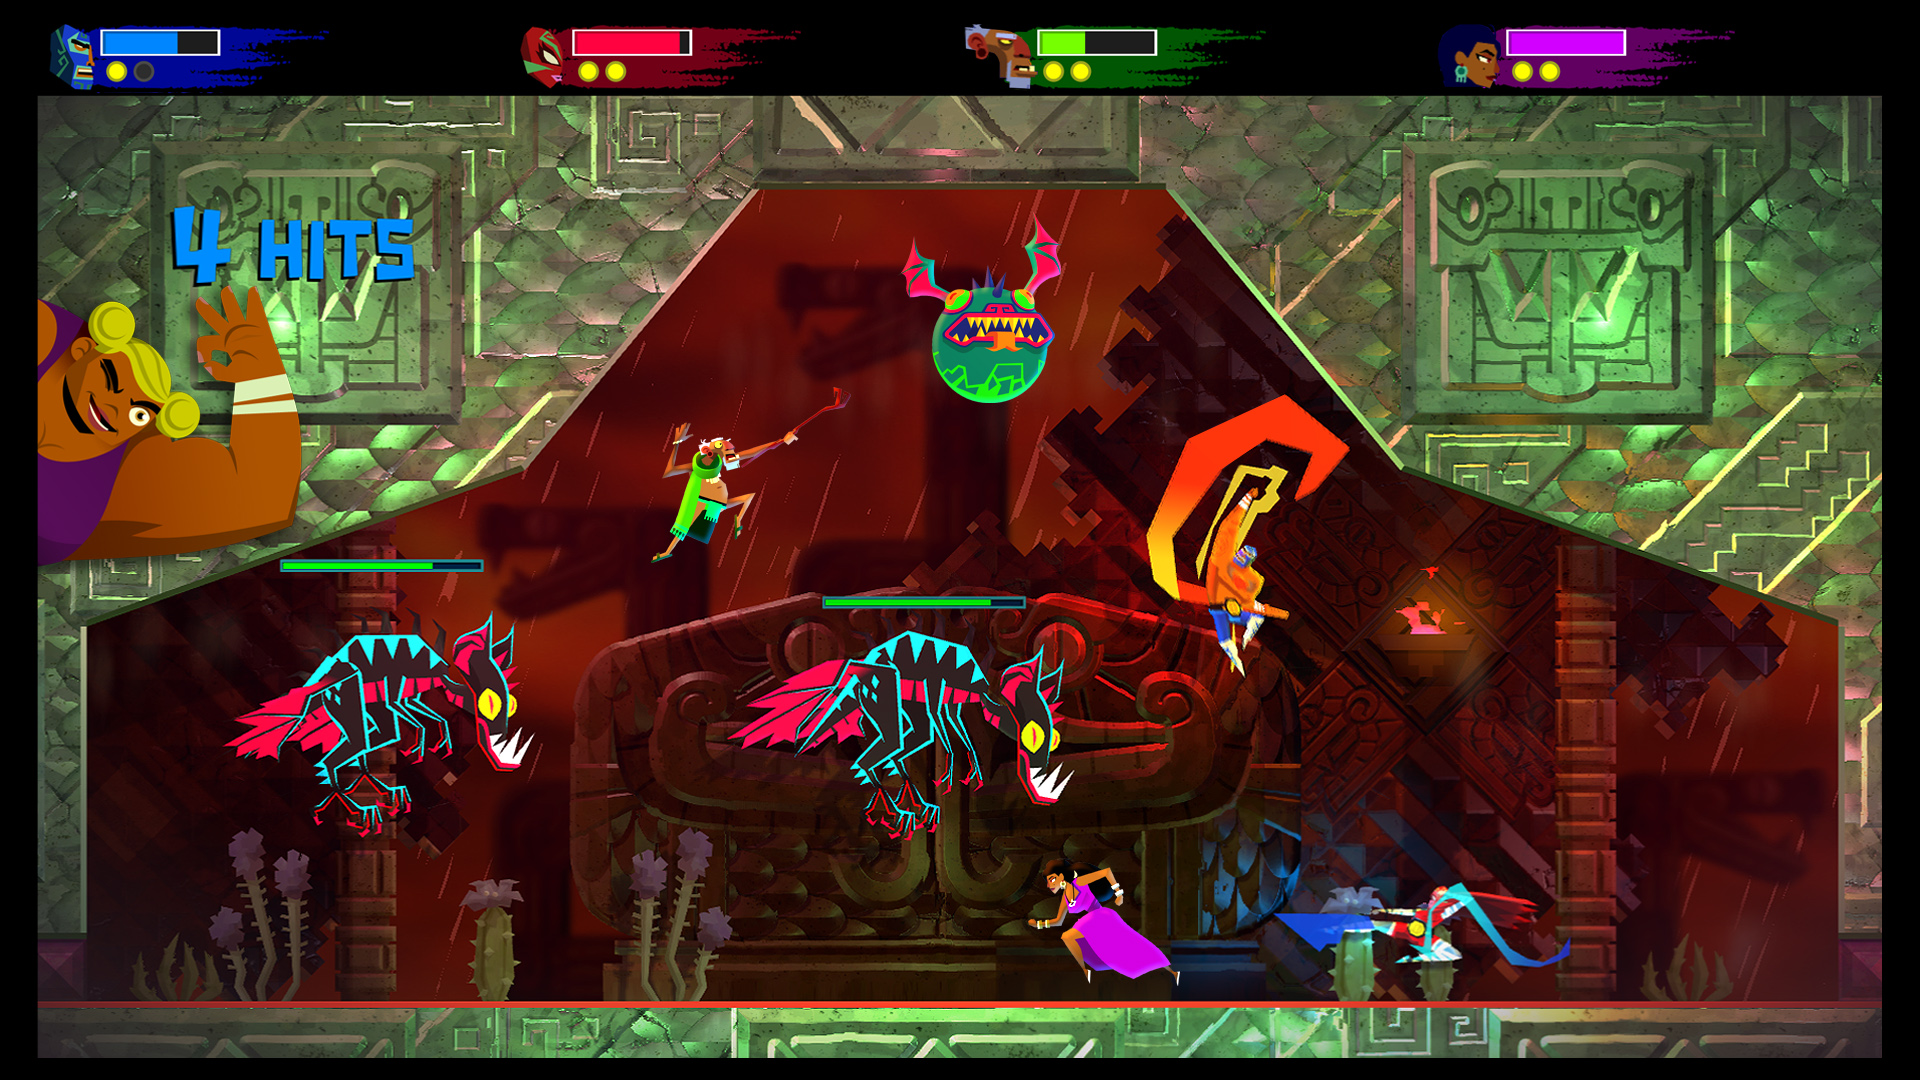 Guacamelee! 2 (PS4) - four-way melee